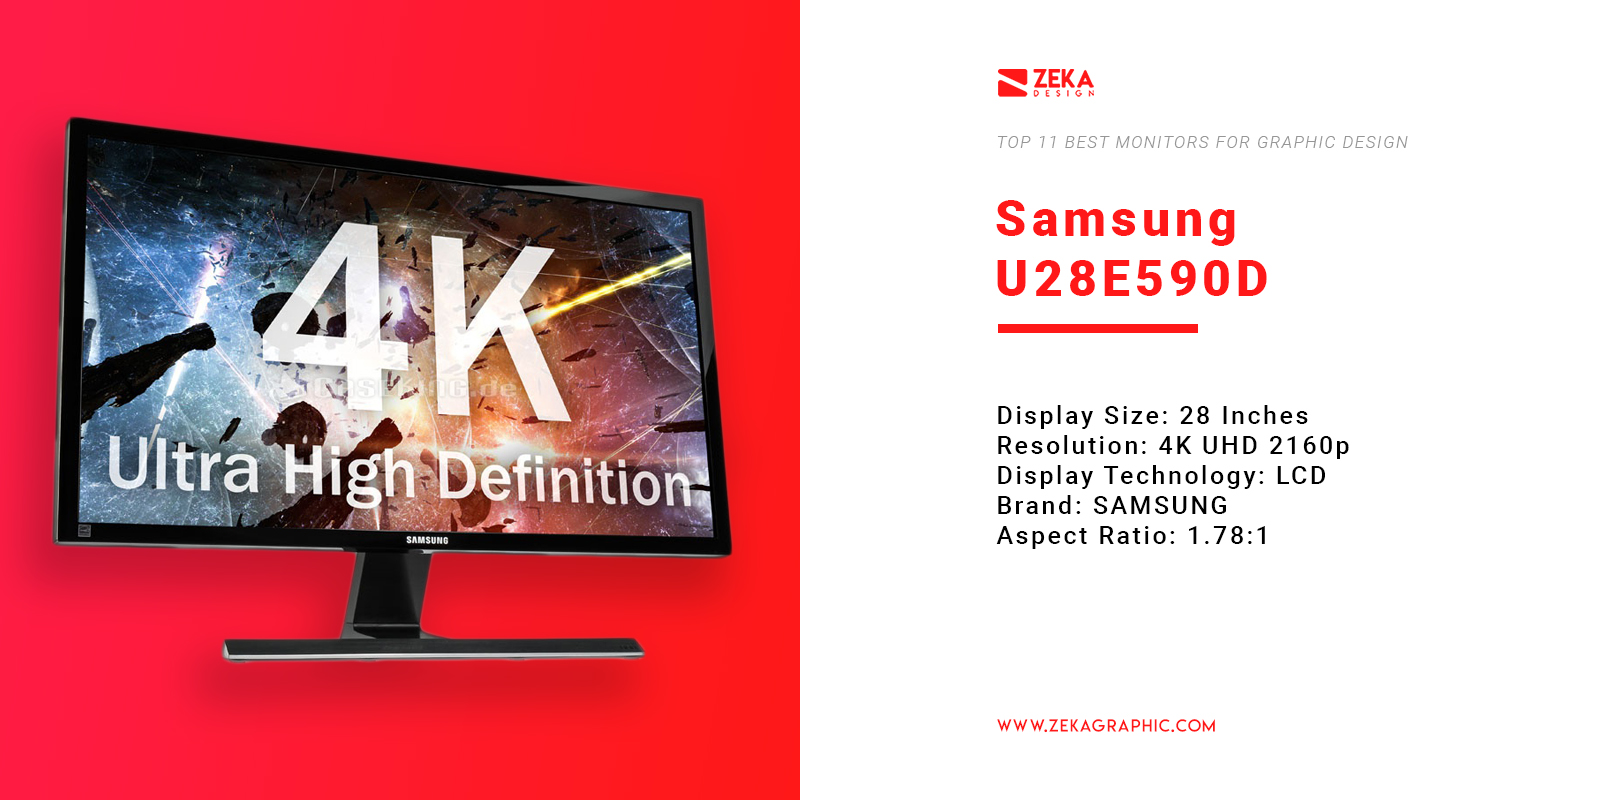 Samsung U28E590D 4K Monitor for Graphic Design